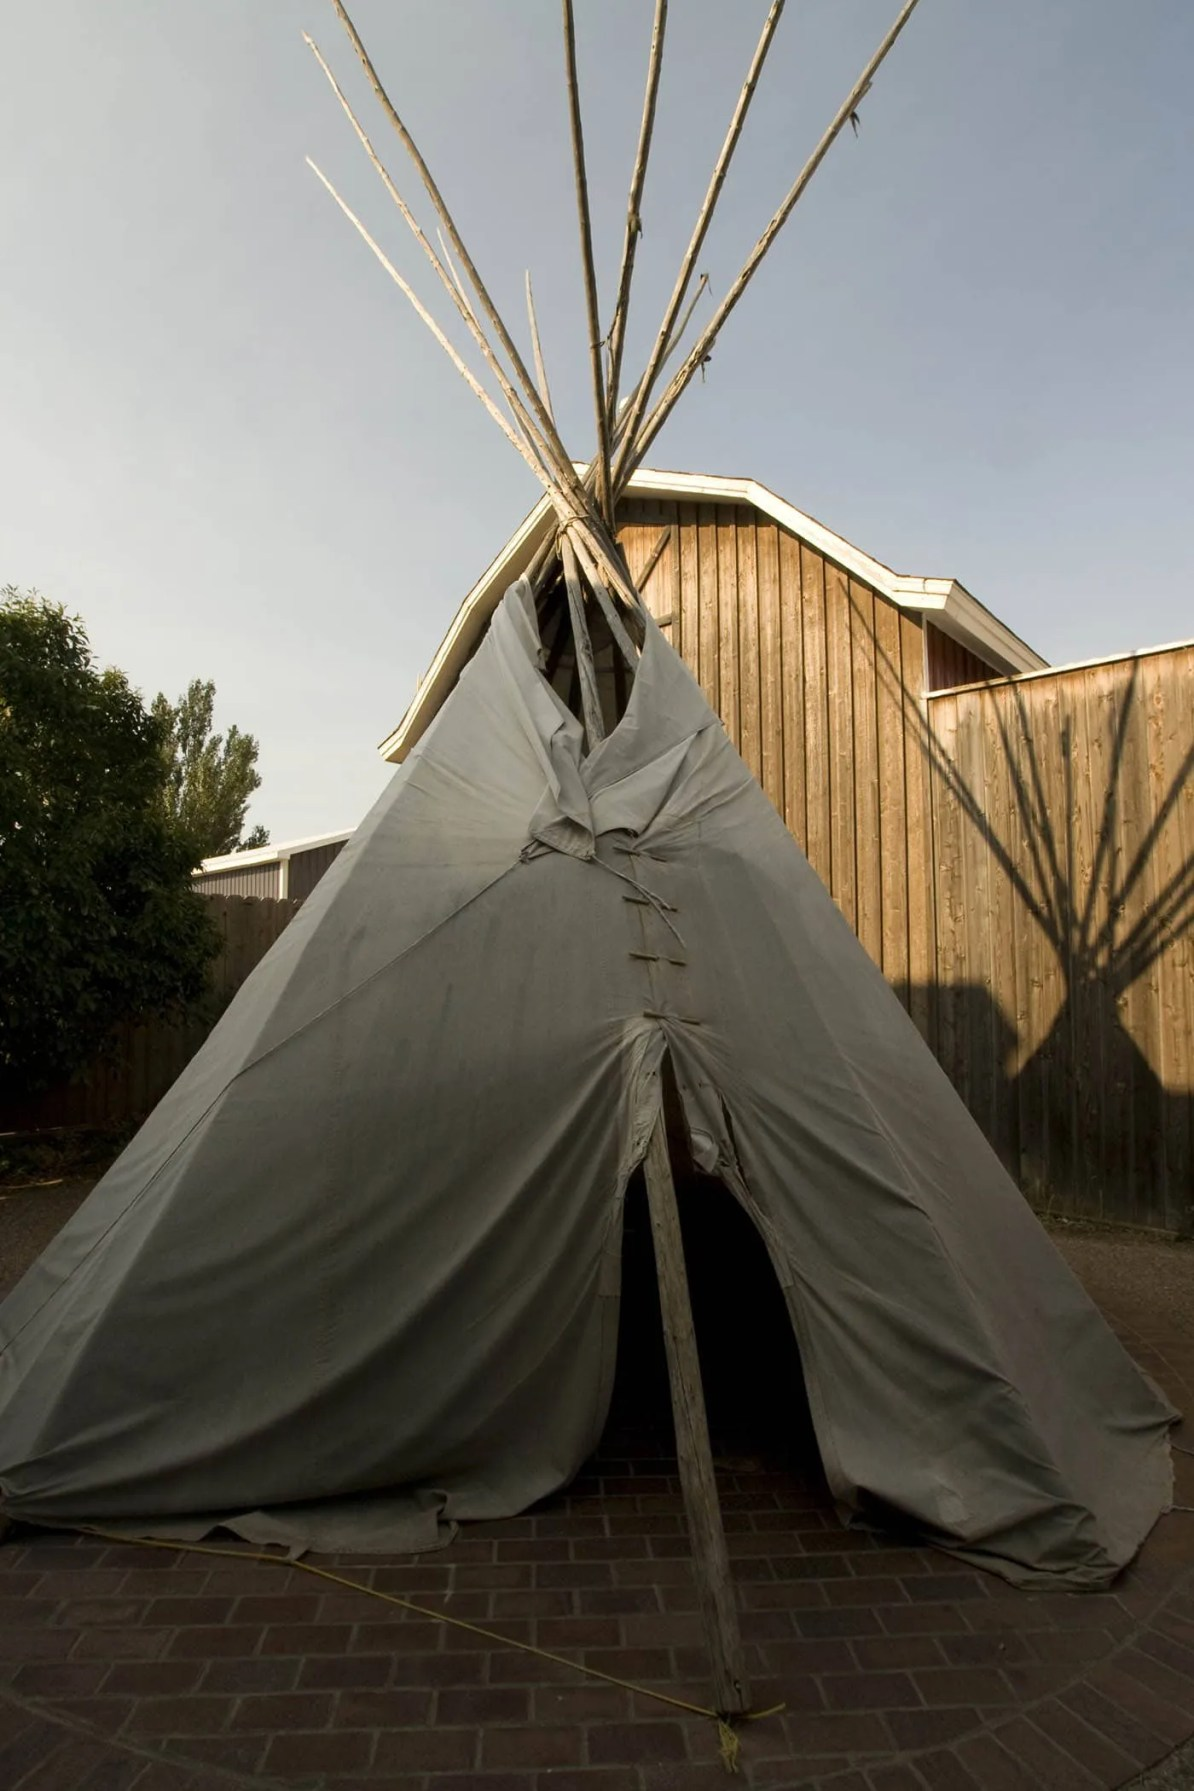 TeePee at Wall Drug Store in Wall, South Dakota